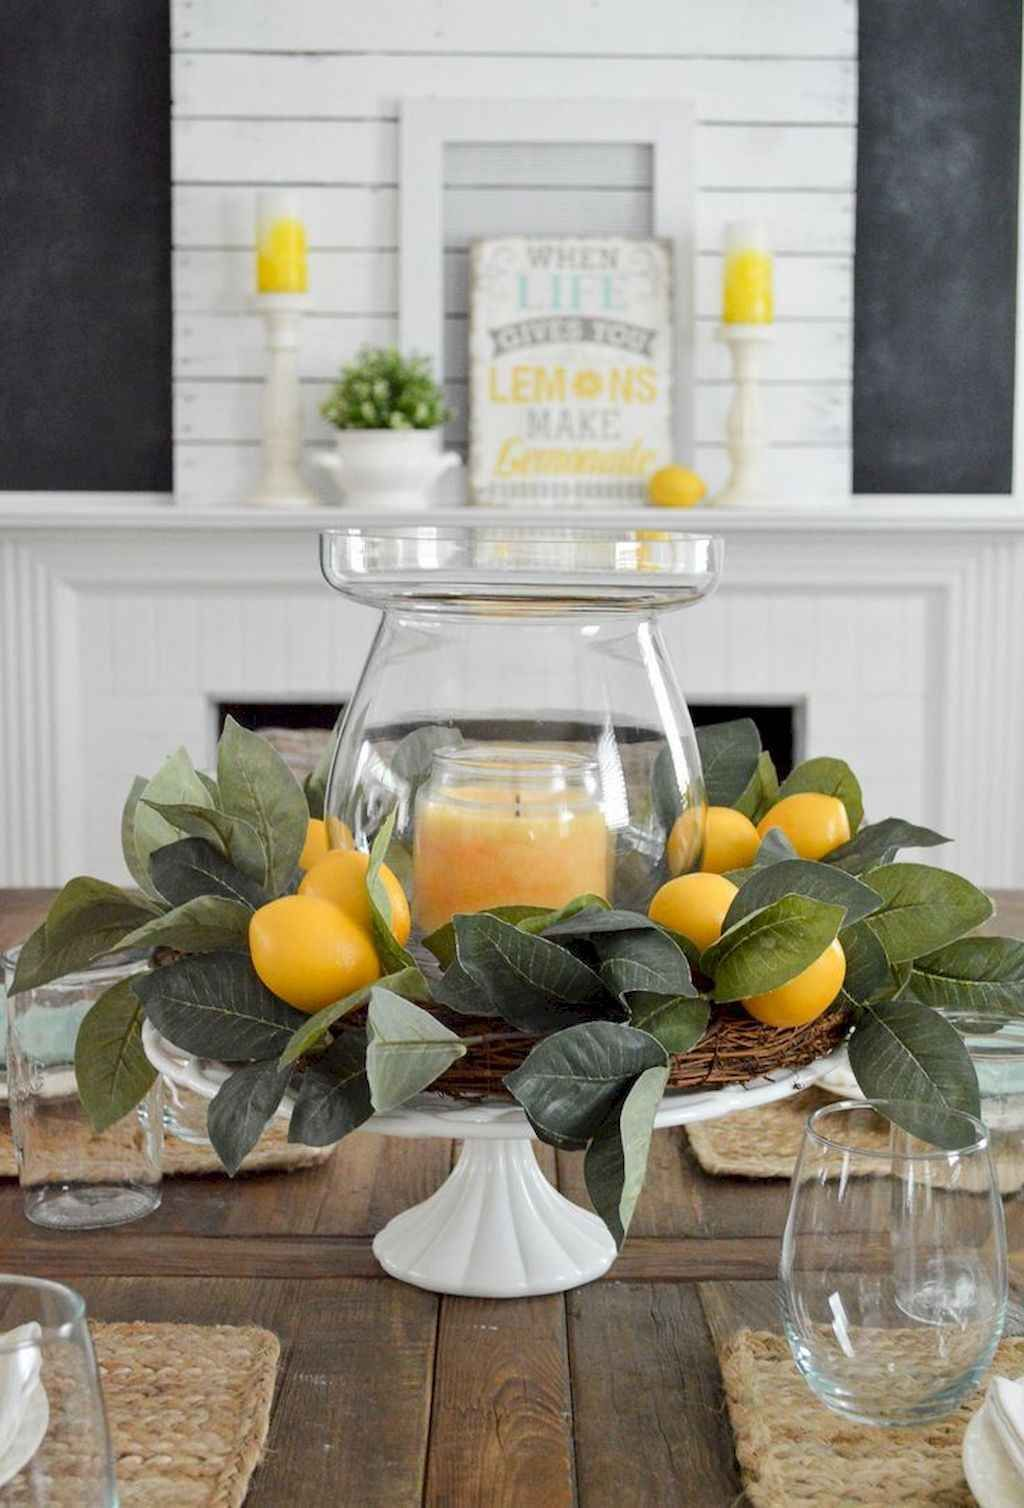 Dining Table Centerpiece Ideas Formal And Unique Dining Room Centerpiece Diy Summer Decor Summer Decor Table Centerpieces For Home